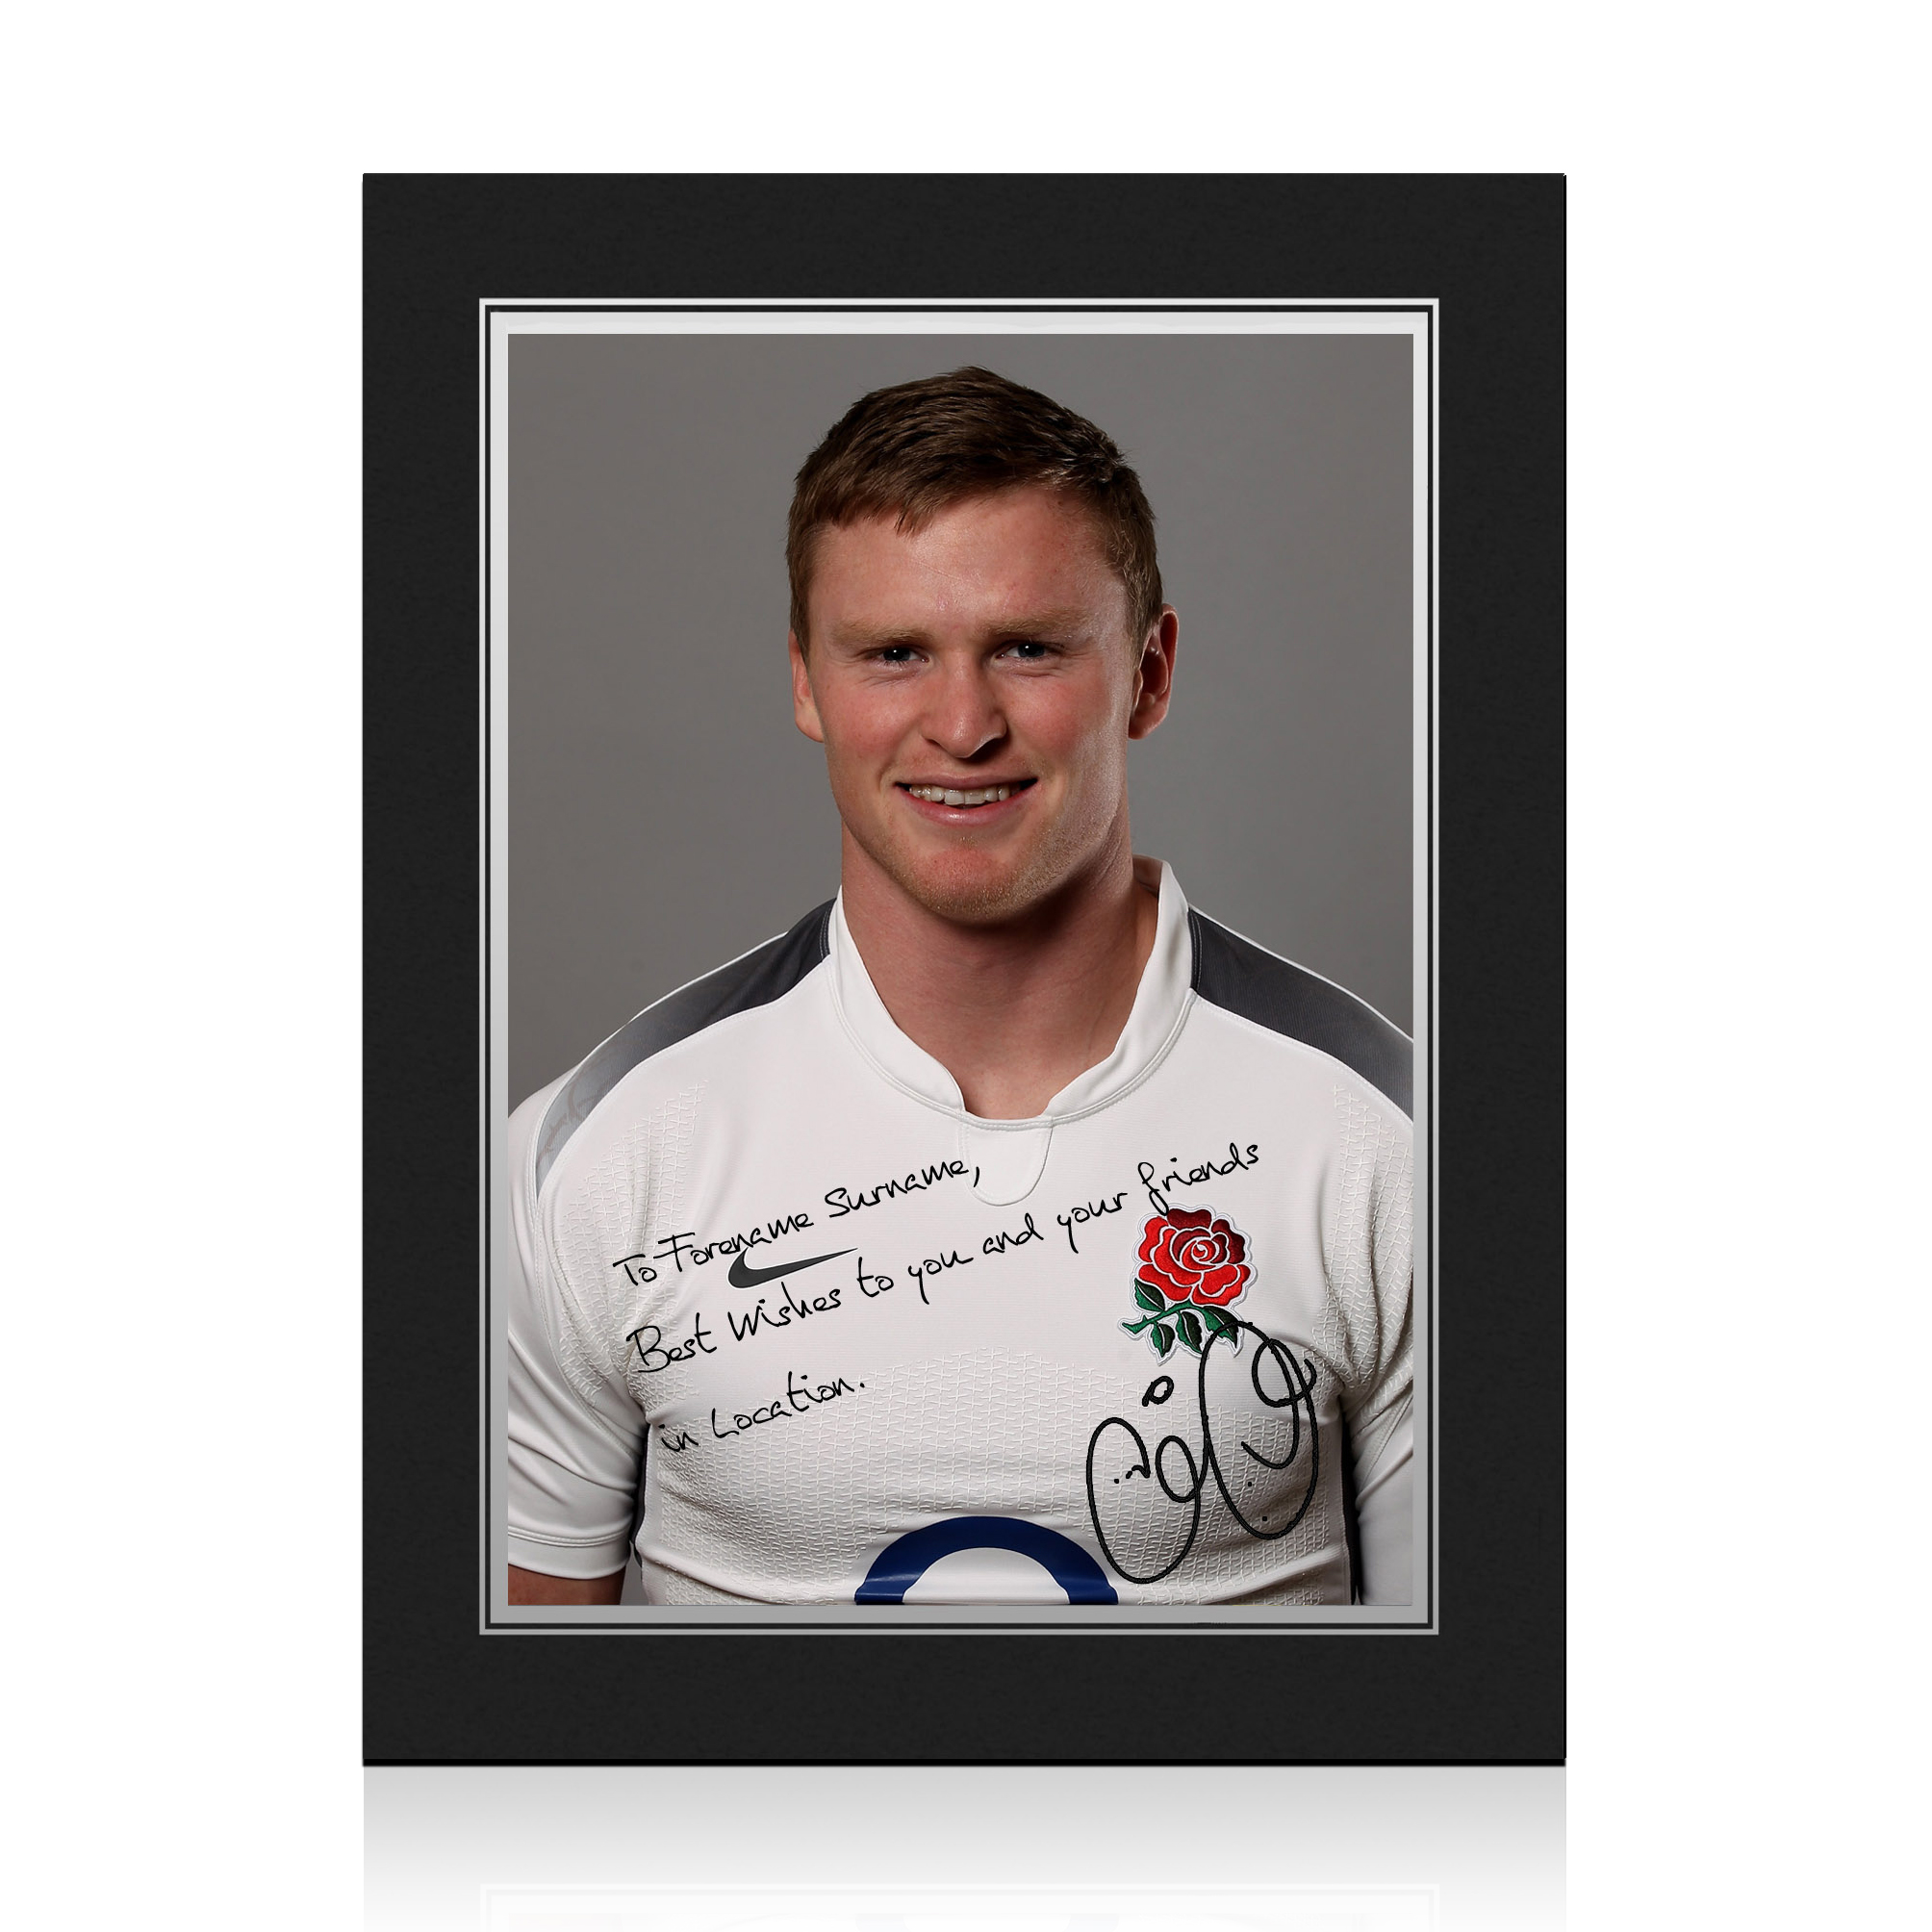 England Rugby Personalised Signature Print in Presentation Folder - Ashton